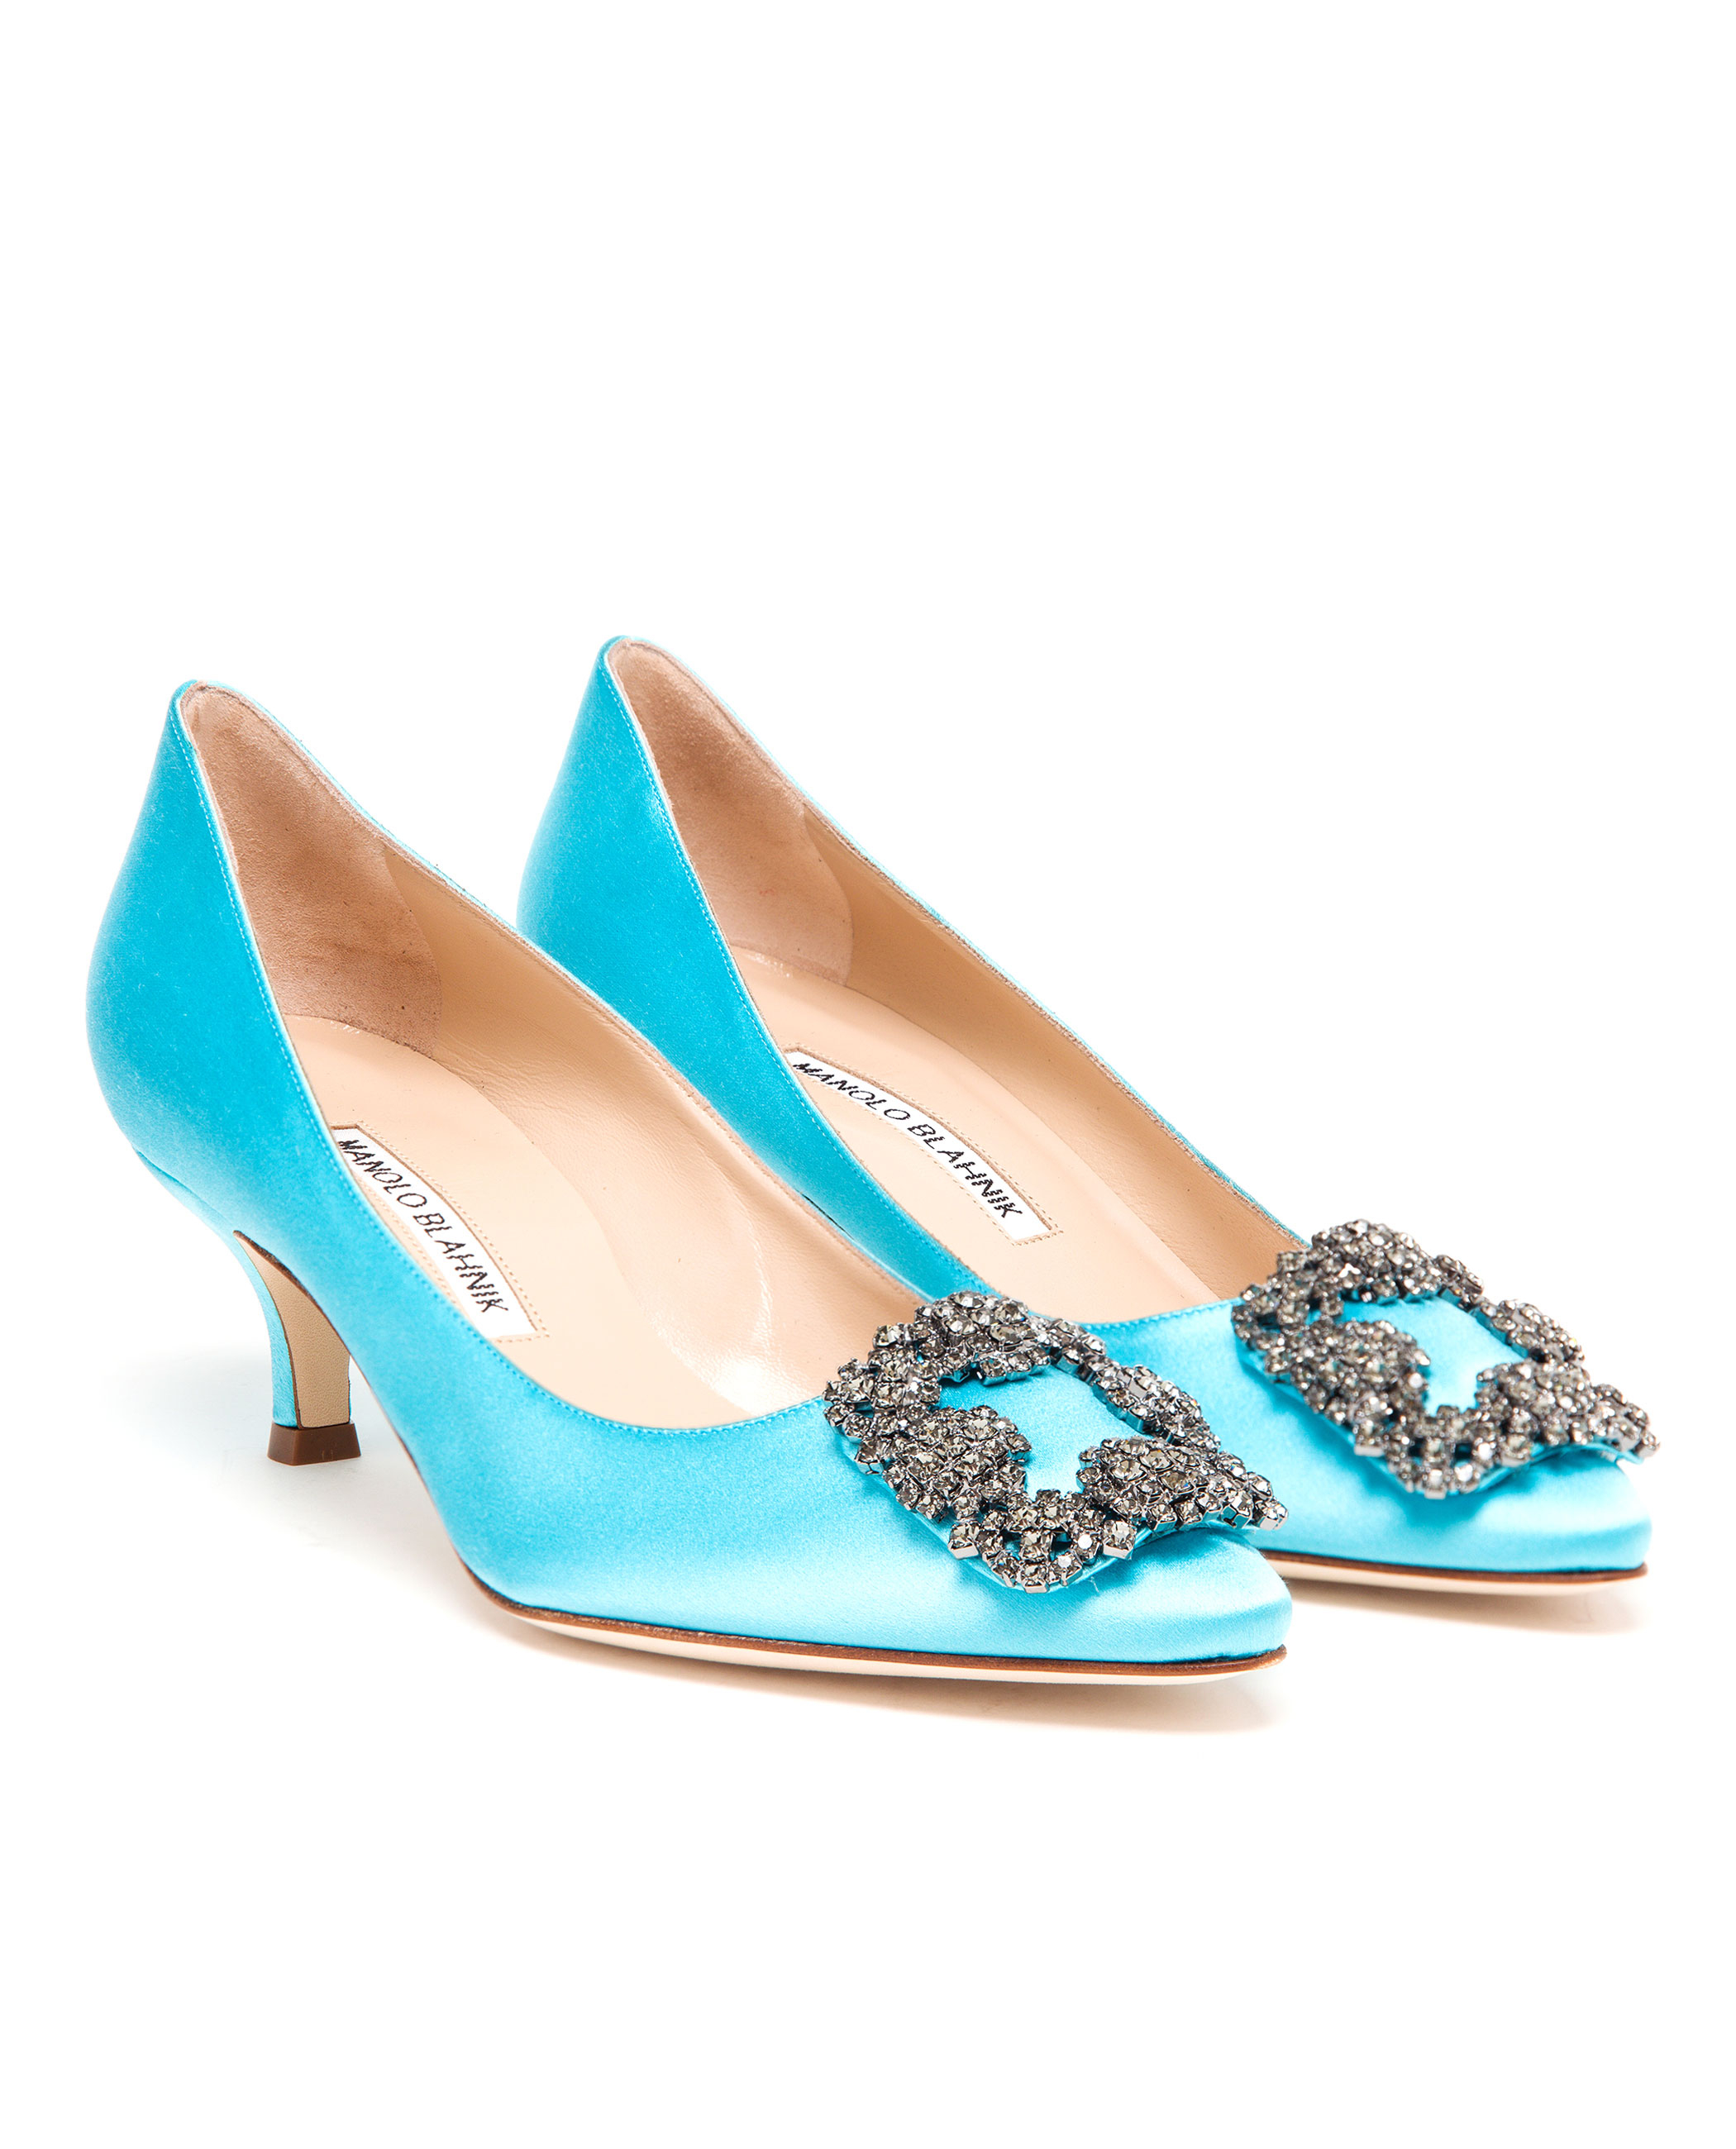 d18d3010357 Gallery. Previously sold at  Browns · Women s Manolo Blahnik Hangisi ...